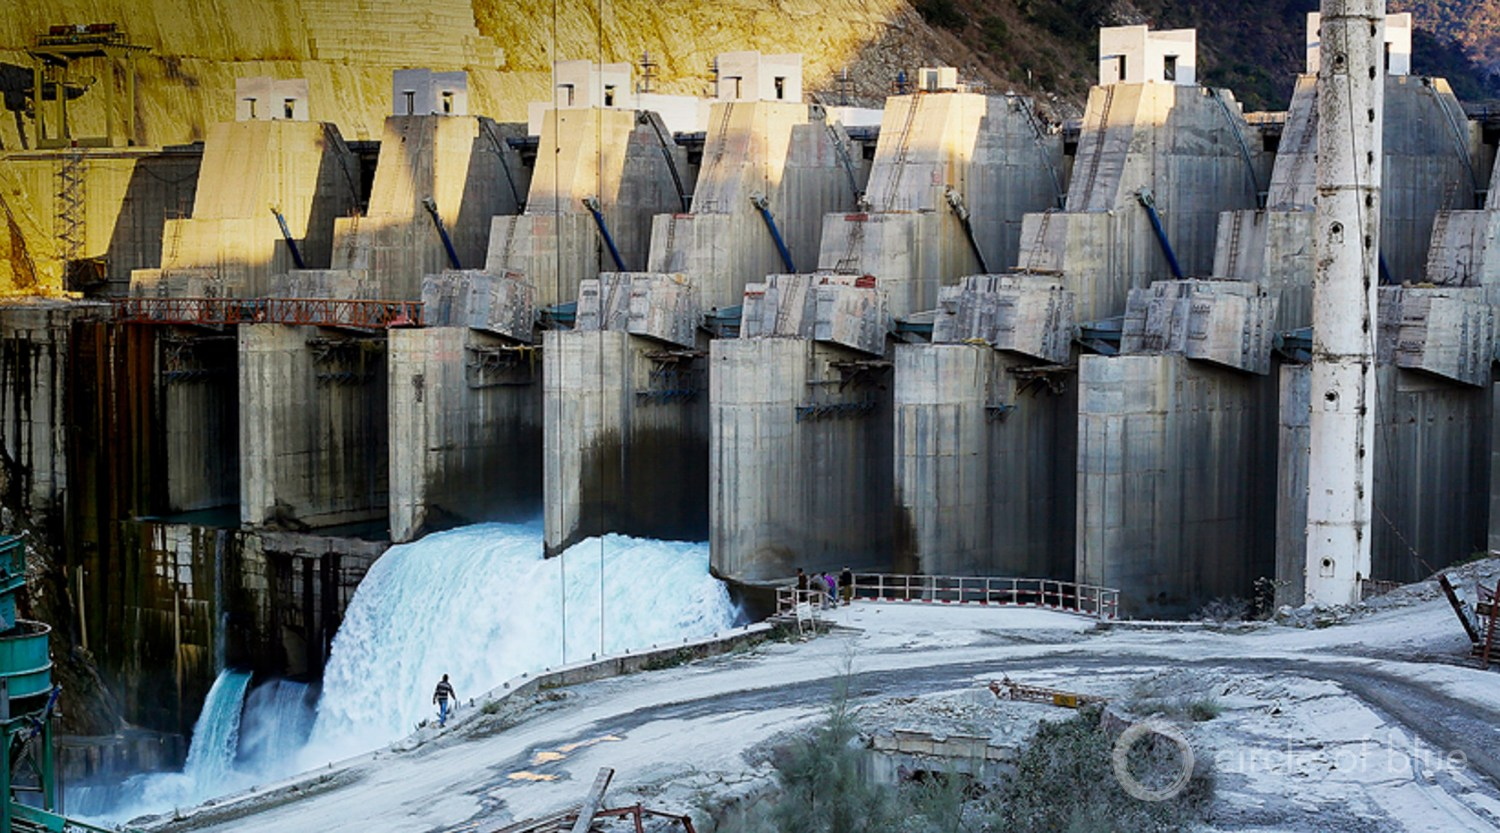 In March 2016 and April 2016, due to severe drought, generation from hydropower projects was 19 percent and 17 percent lower compared to the same months the previous year. Here, a hydropower project in Srinagar, a Himalayan hill city in Uttarakhand. Photo © Durham Malhotra